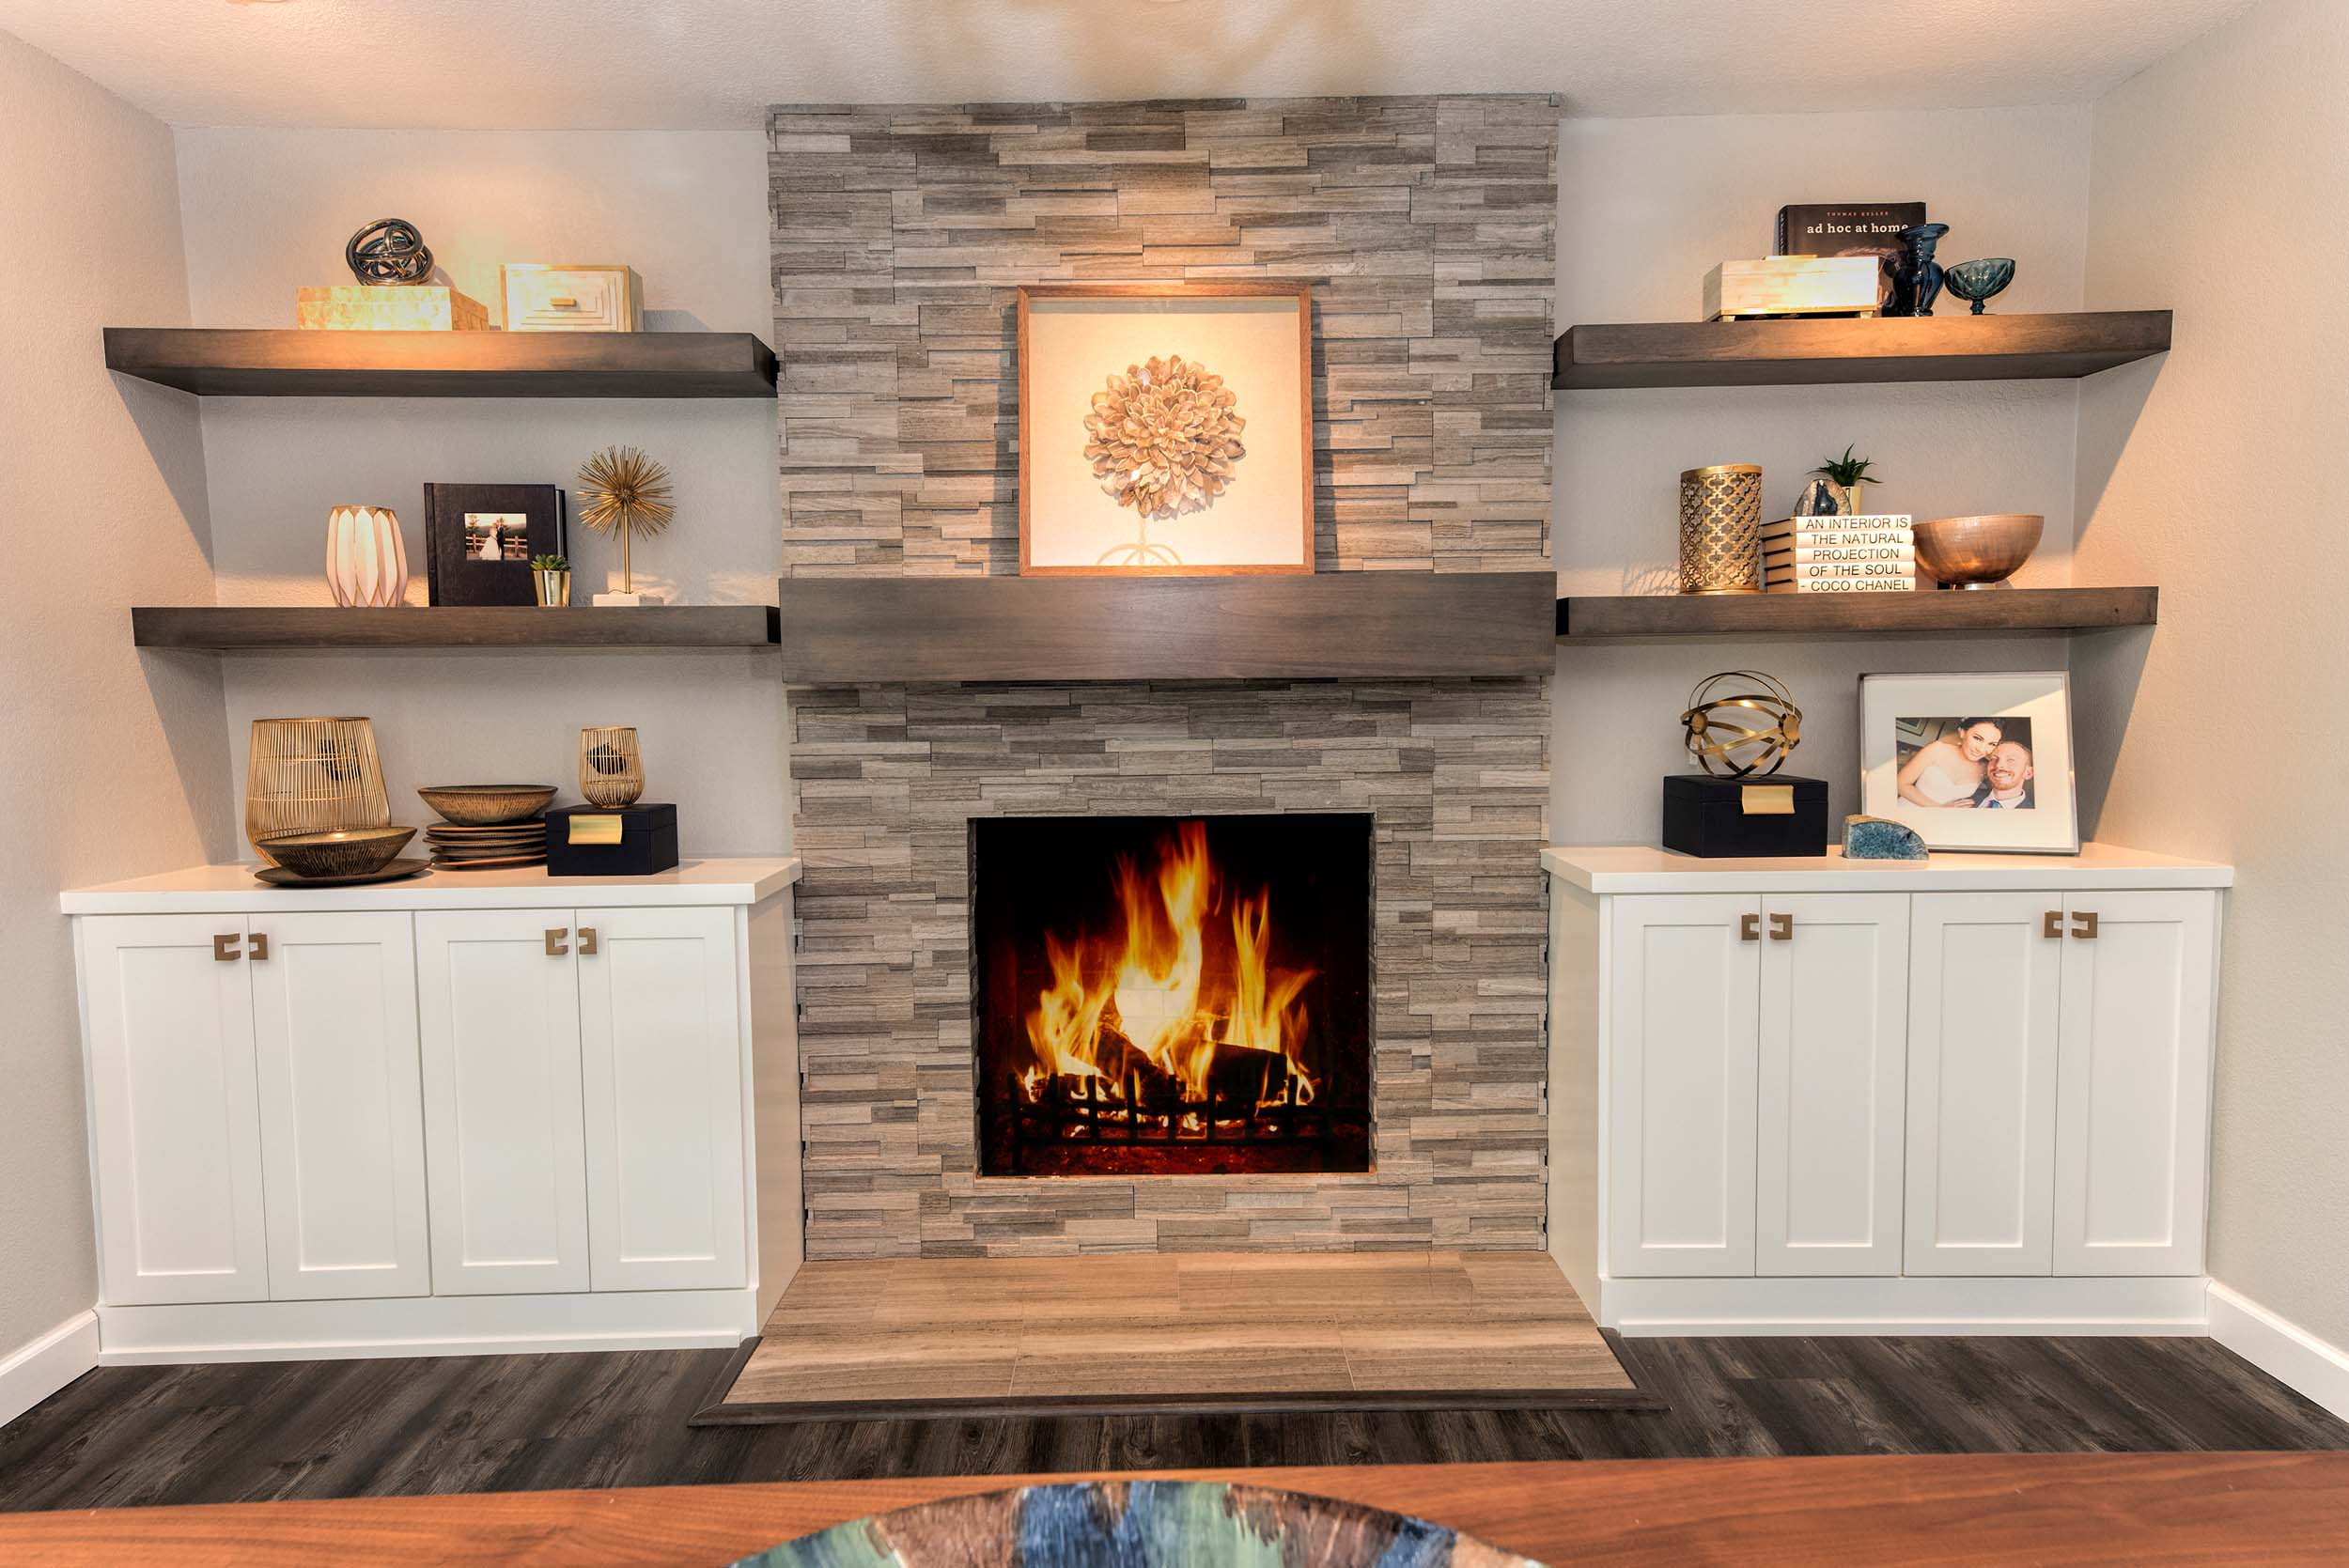 House interior with stone fireplace, hardwood floor, built-in shelves and cabinet